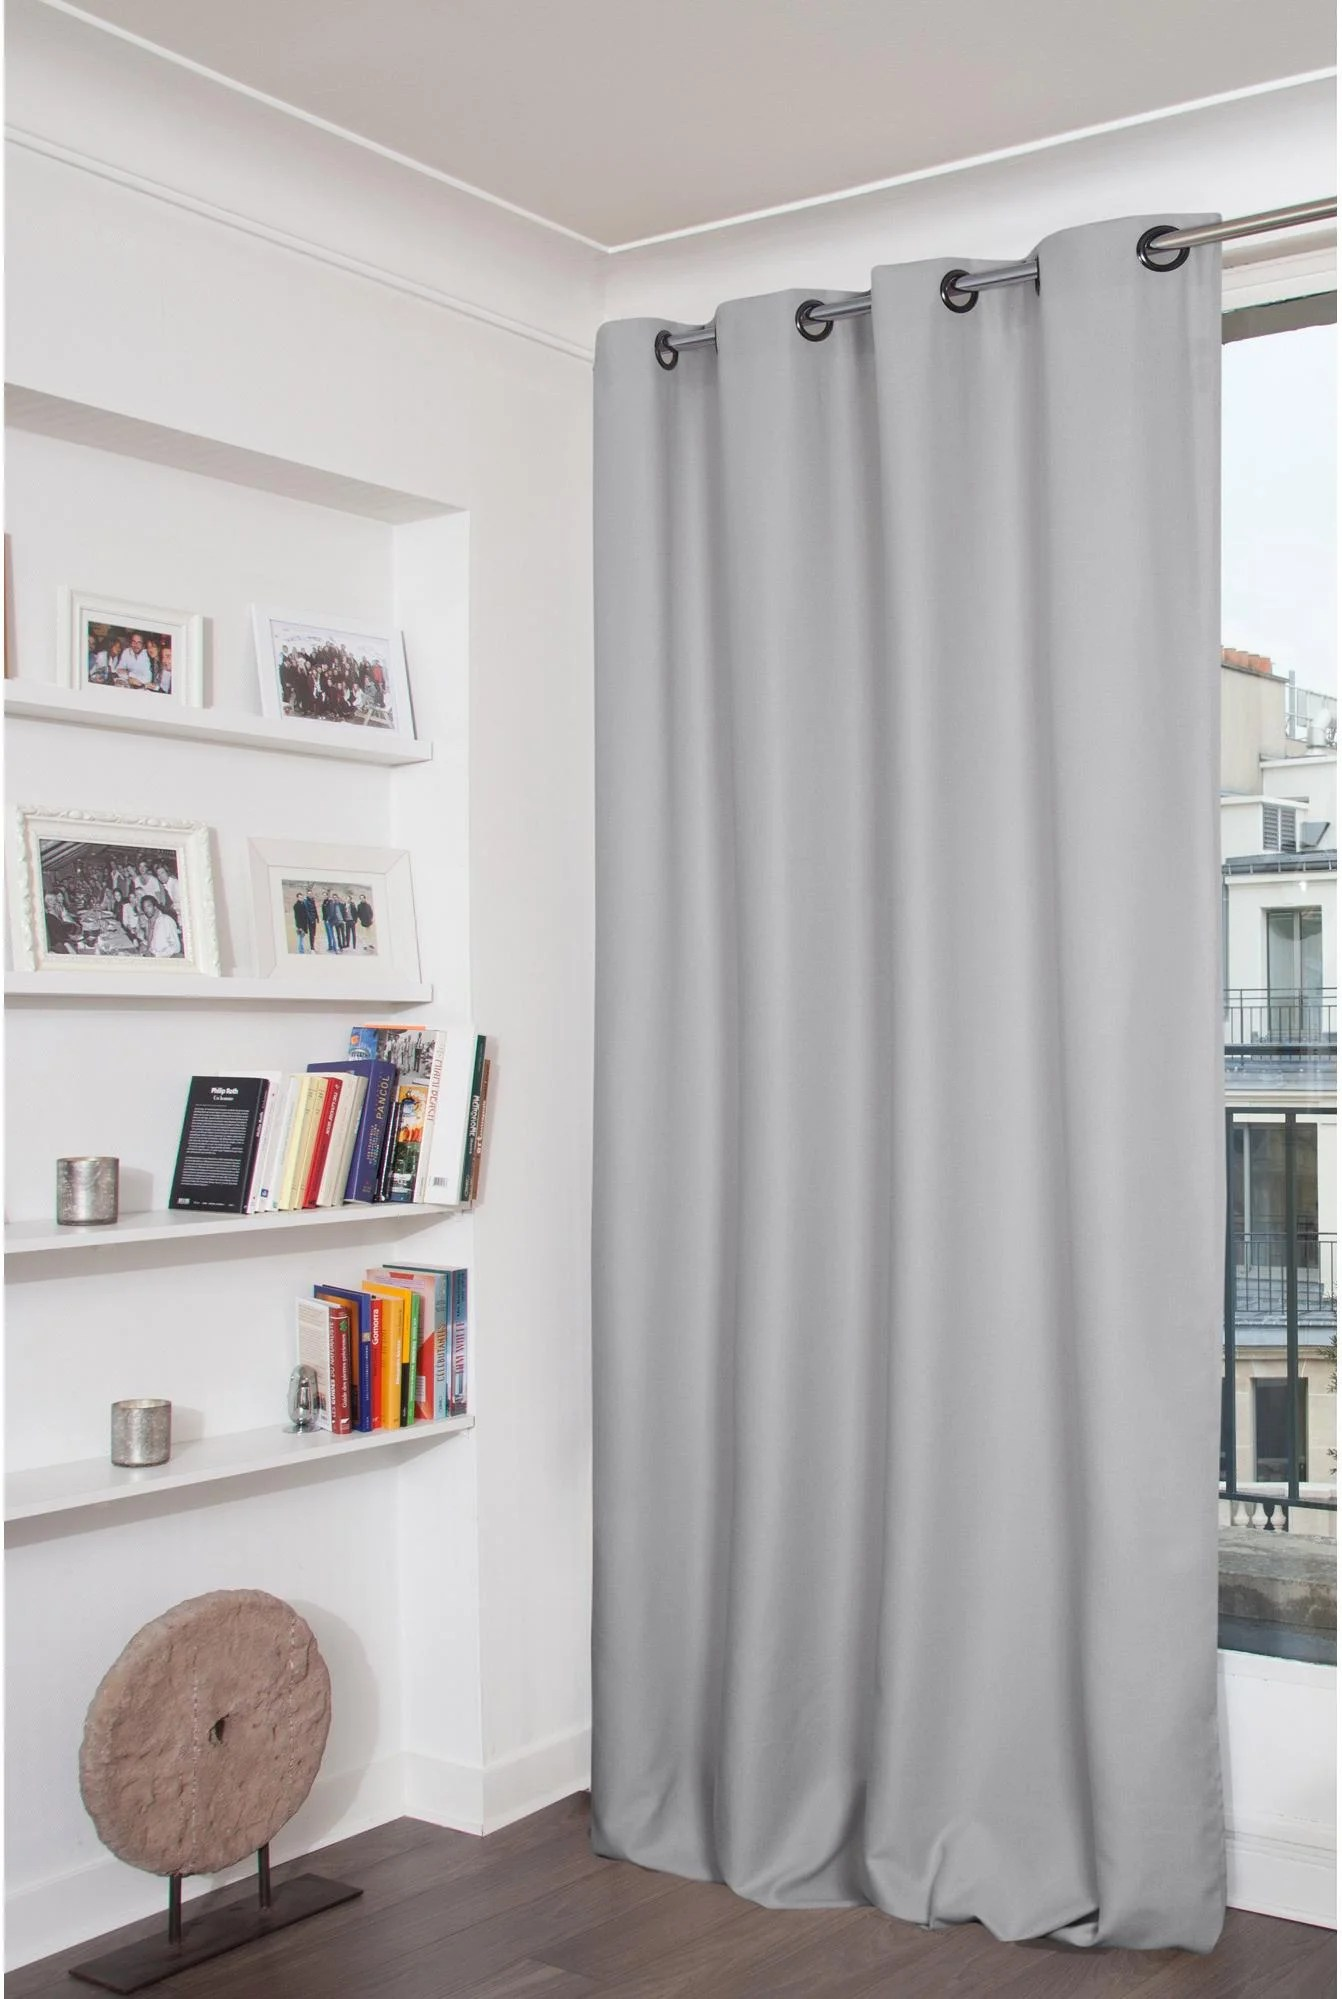 Store Banne Coffre Everest Rideau Tamisant Everest Gris Galet L 140 X H 260 Cm Moondream